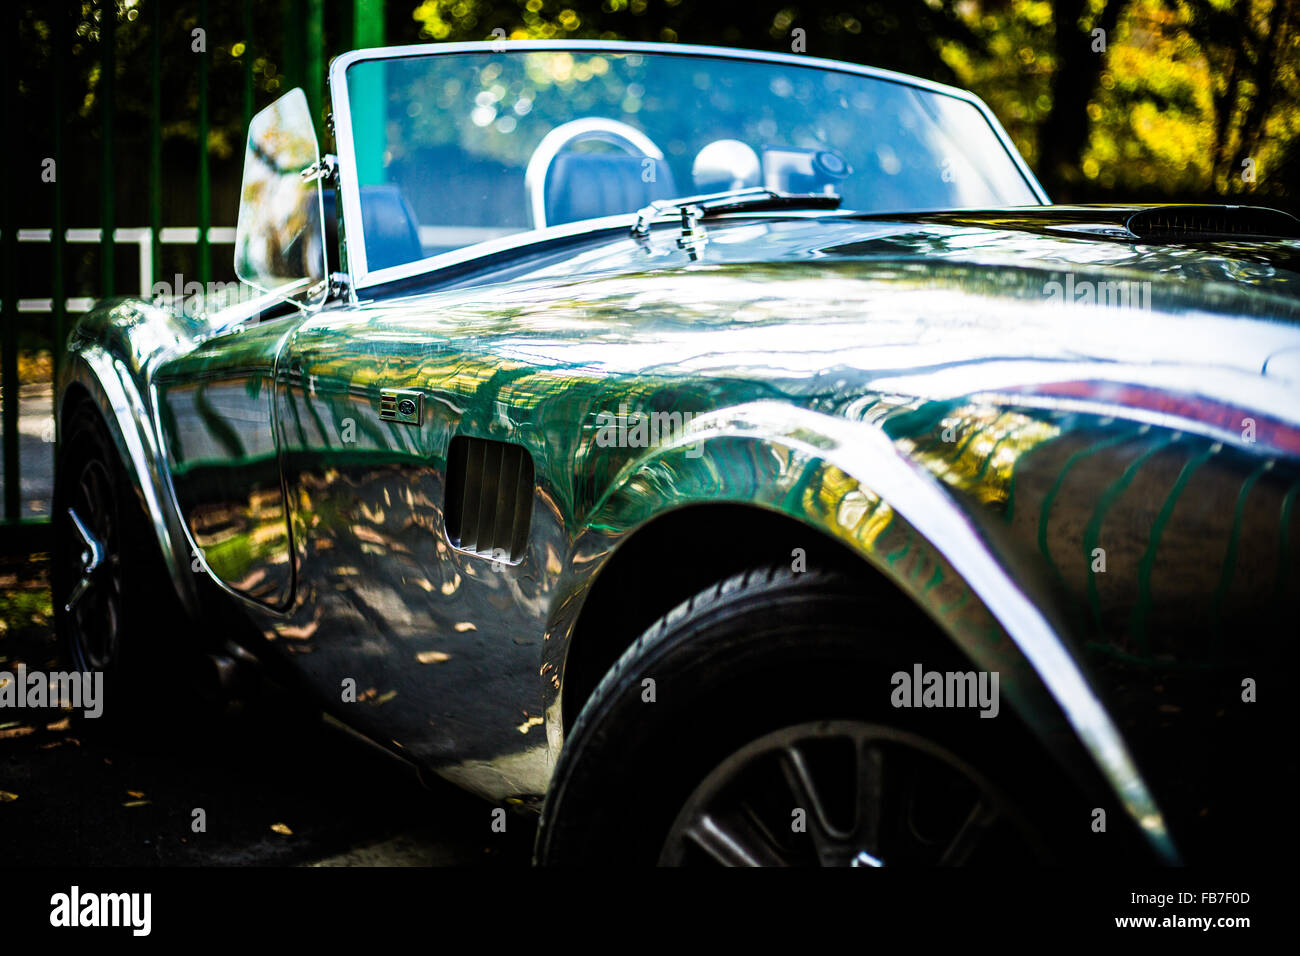 aluminum body convertible AC Cobra front passenger side view showing air intake vent - Stock Image